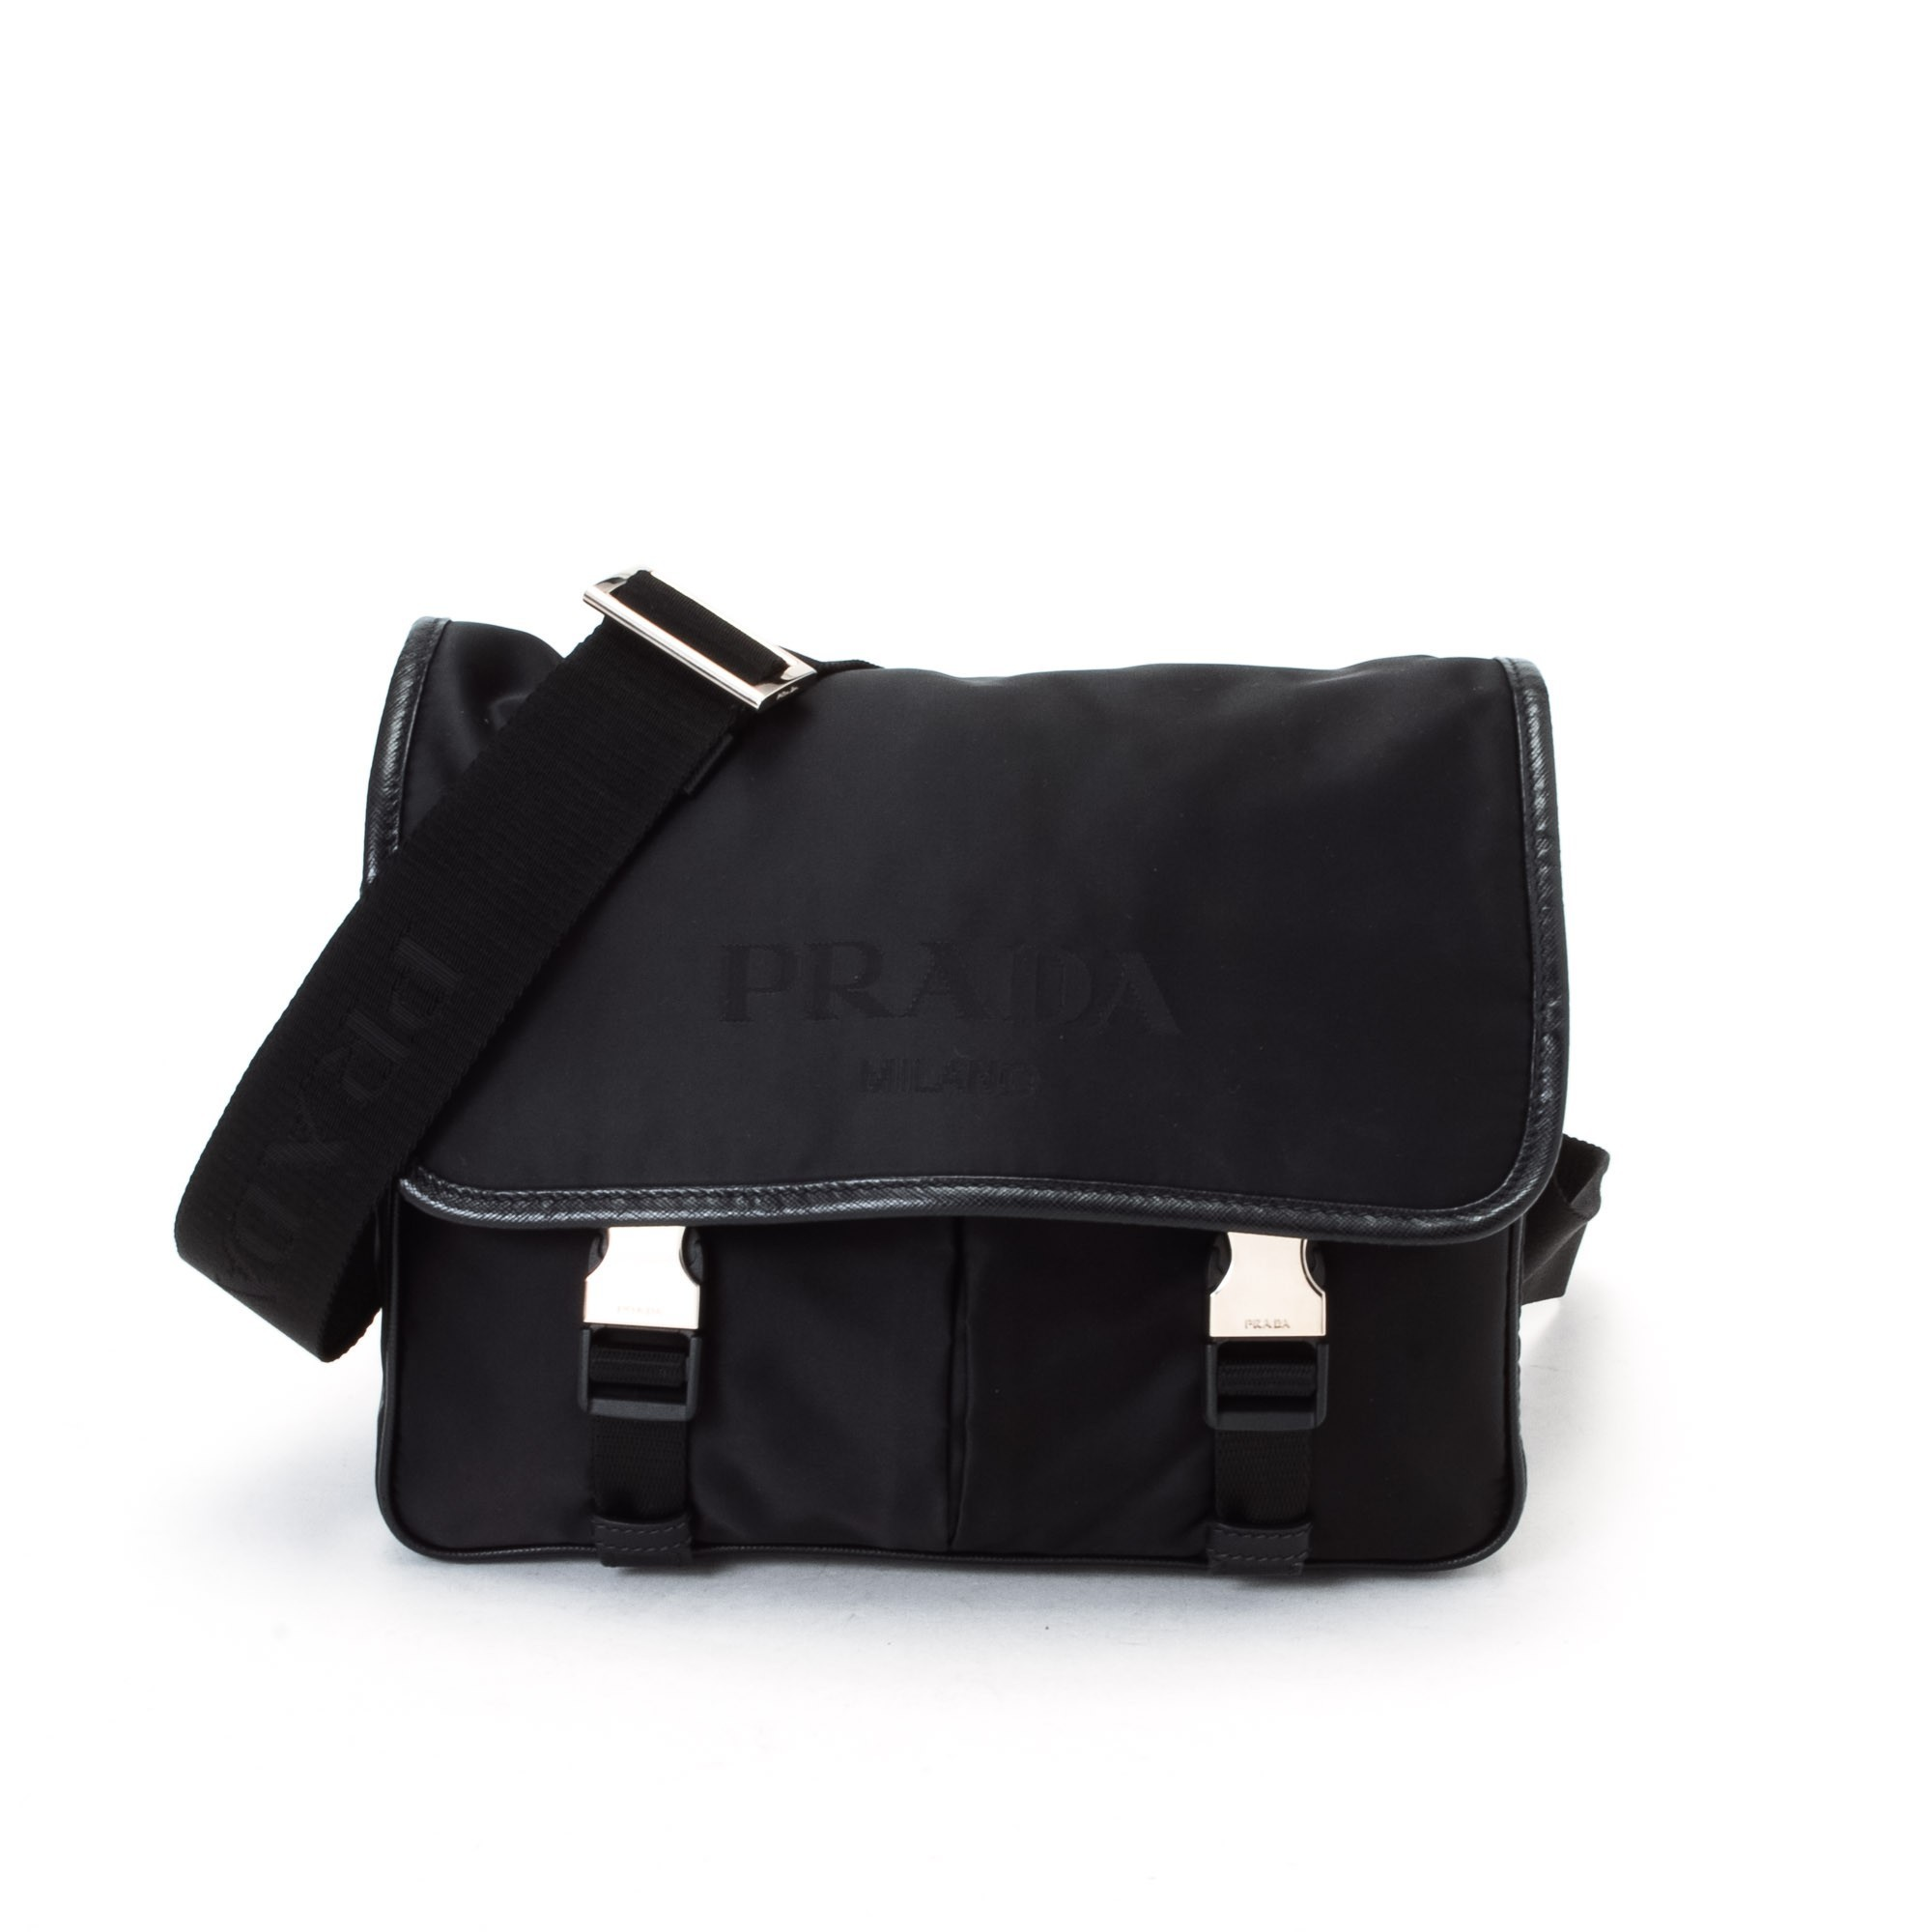 prada black tote bag nylon - Prada Tessuto Shoulder Bag Black Nylon Shoulder Bag - LXR\u0026amp;CO ...